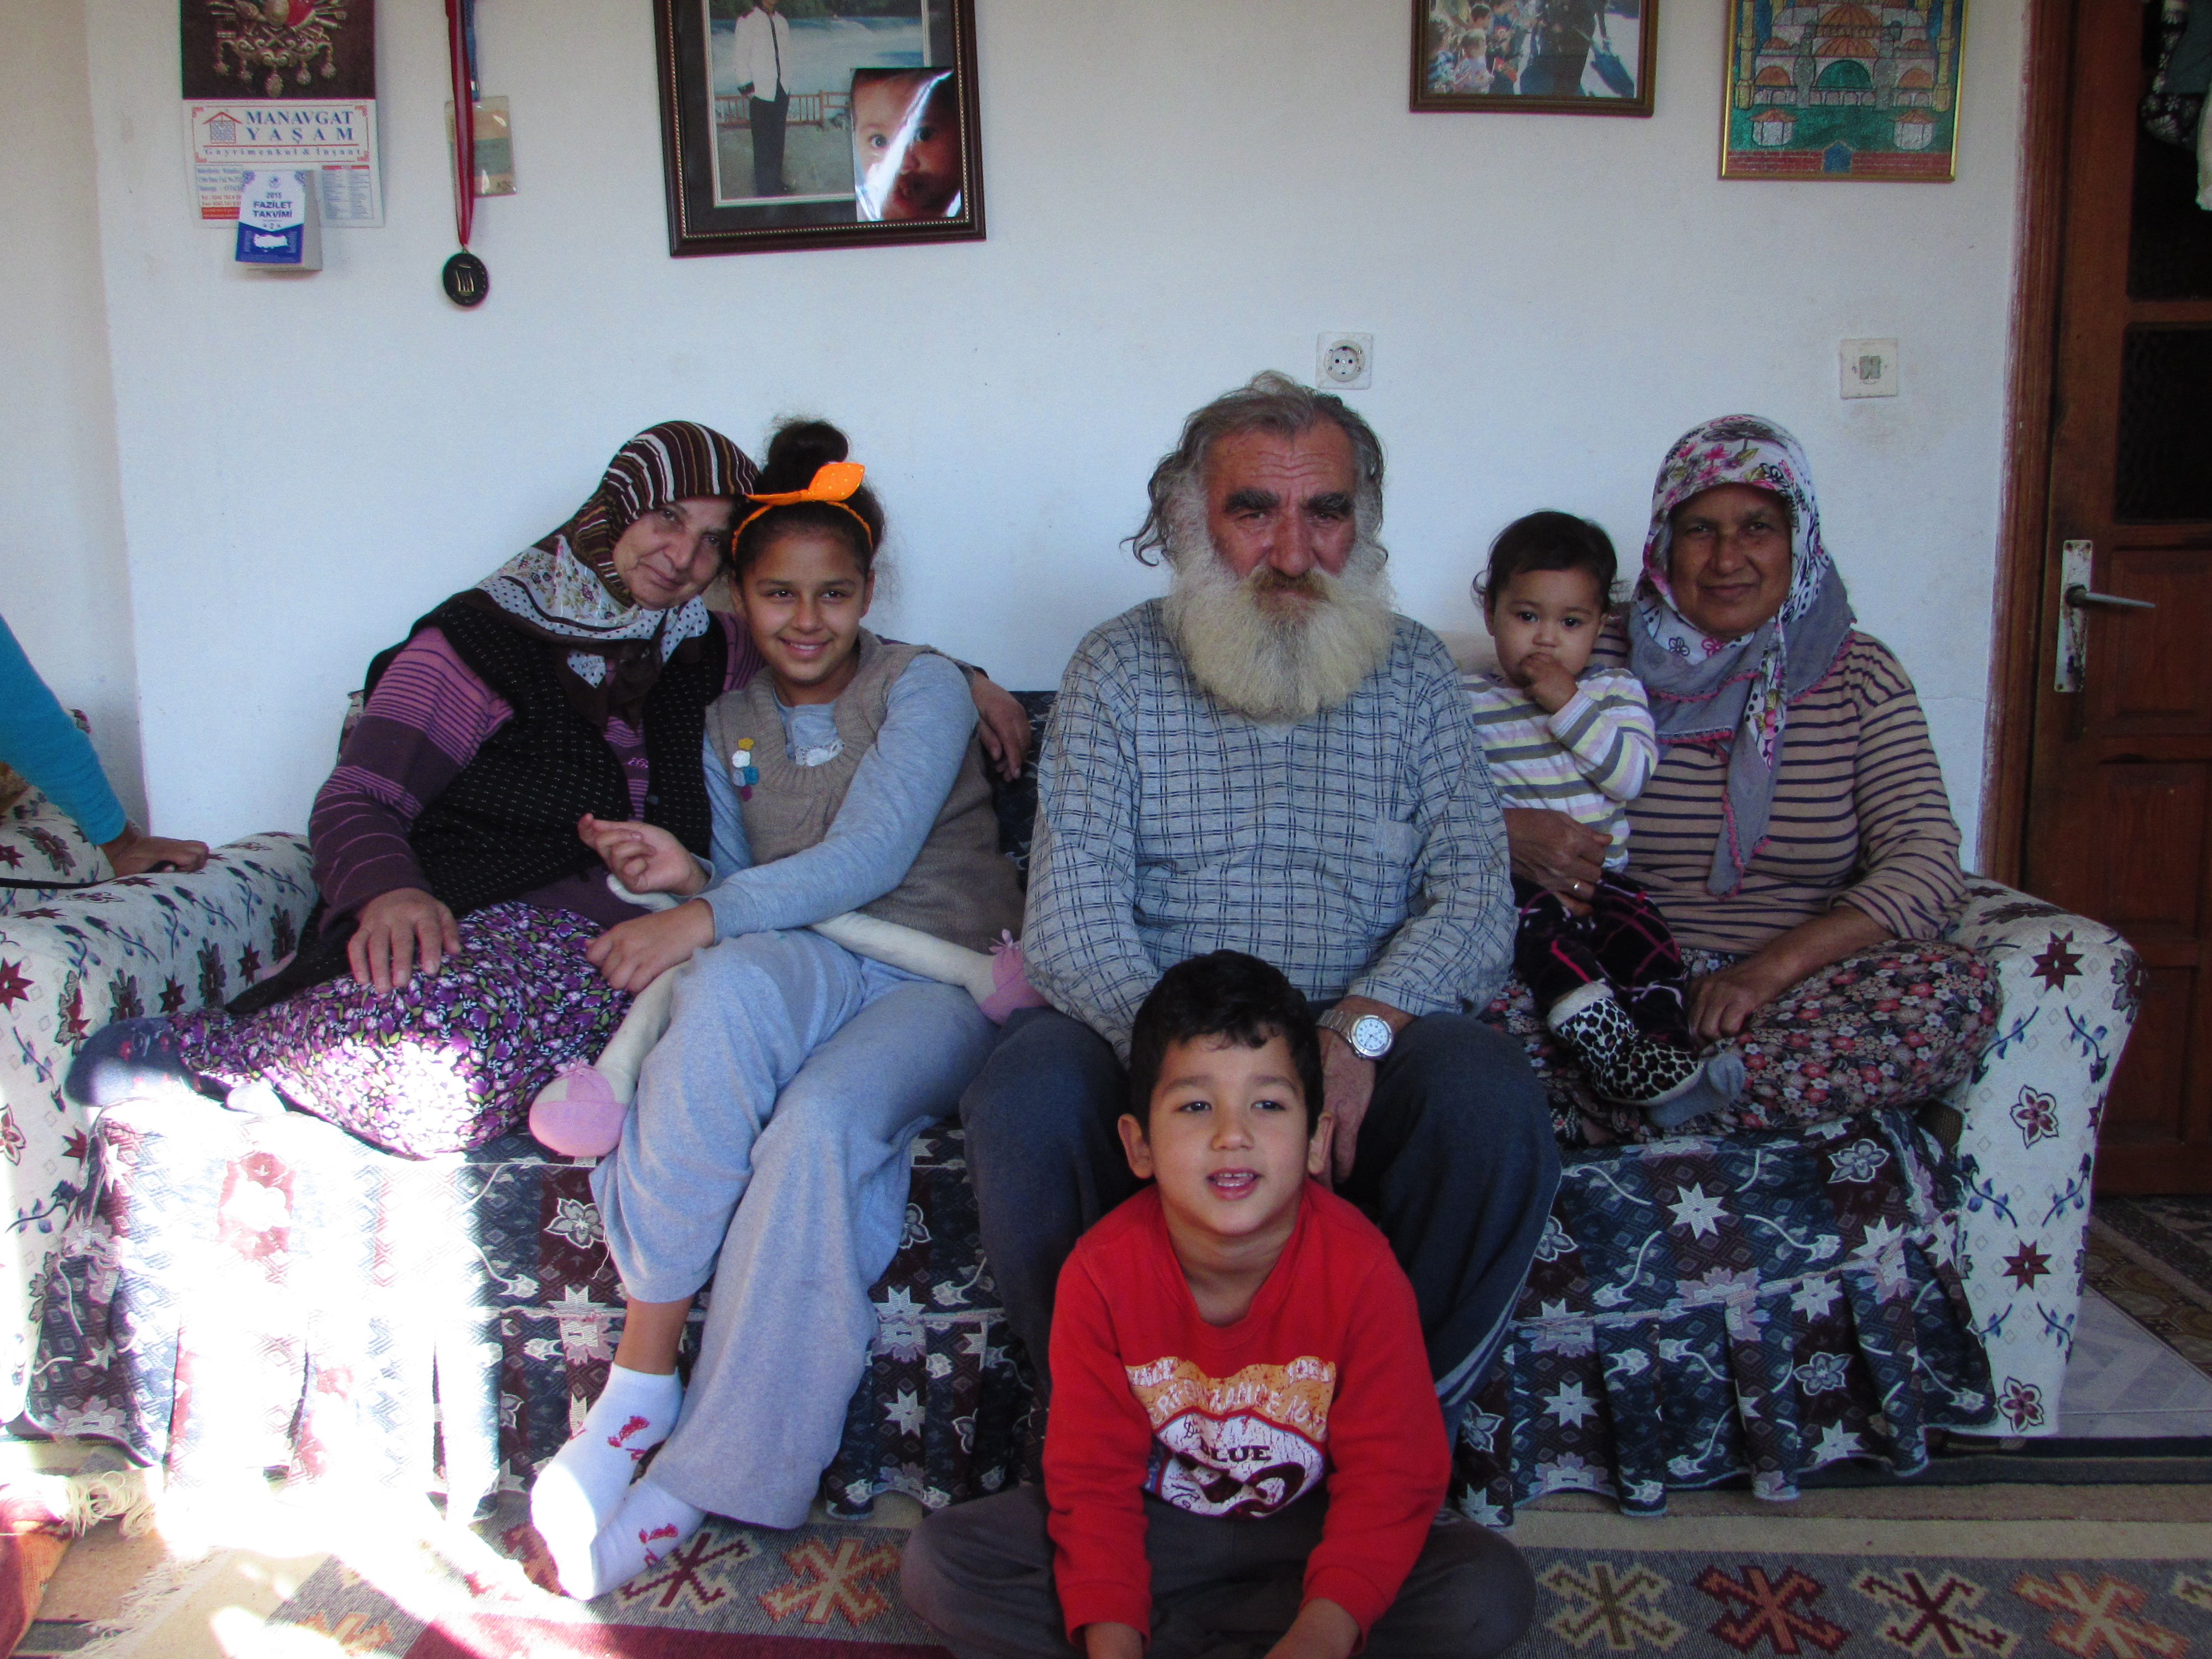 A family who took us in from the rain after finding us setting up camp on the side of the road in Manavgat